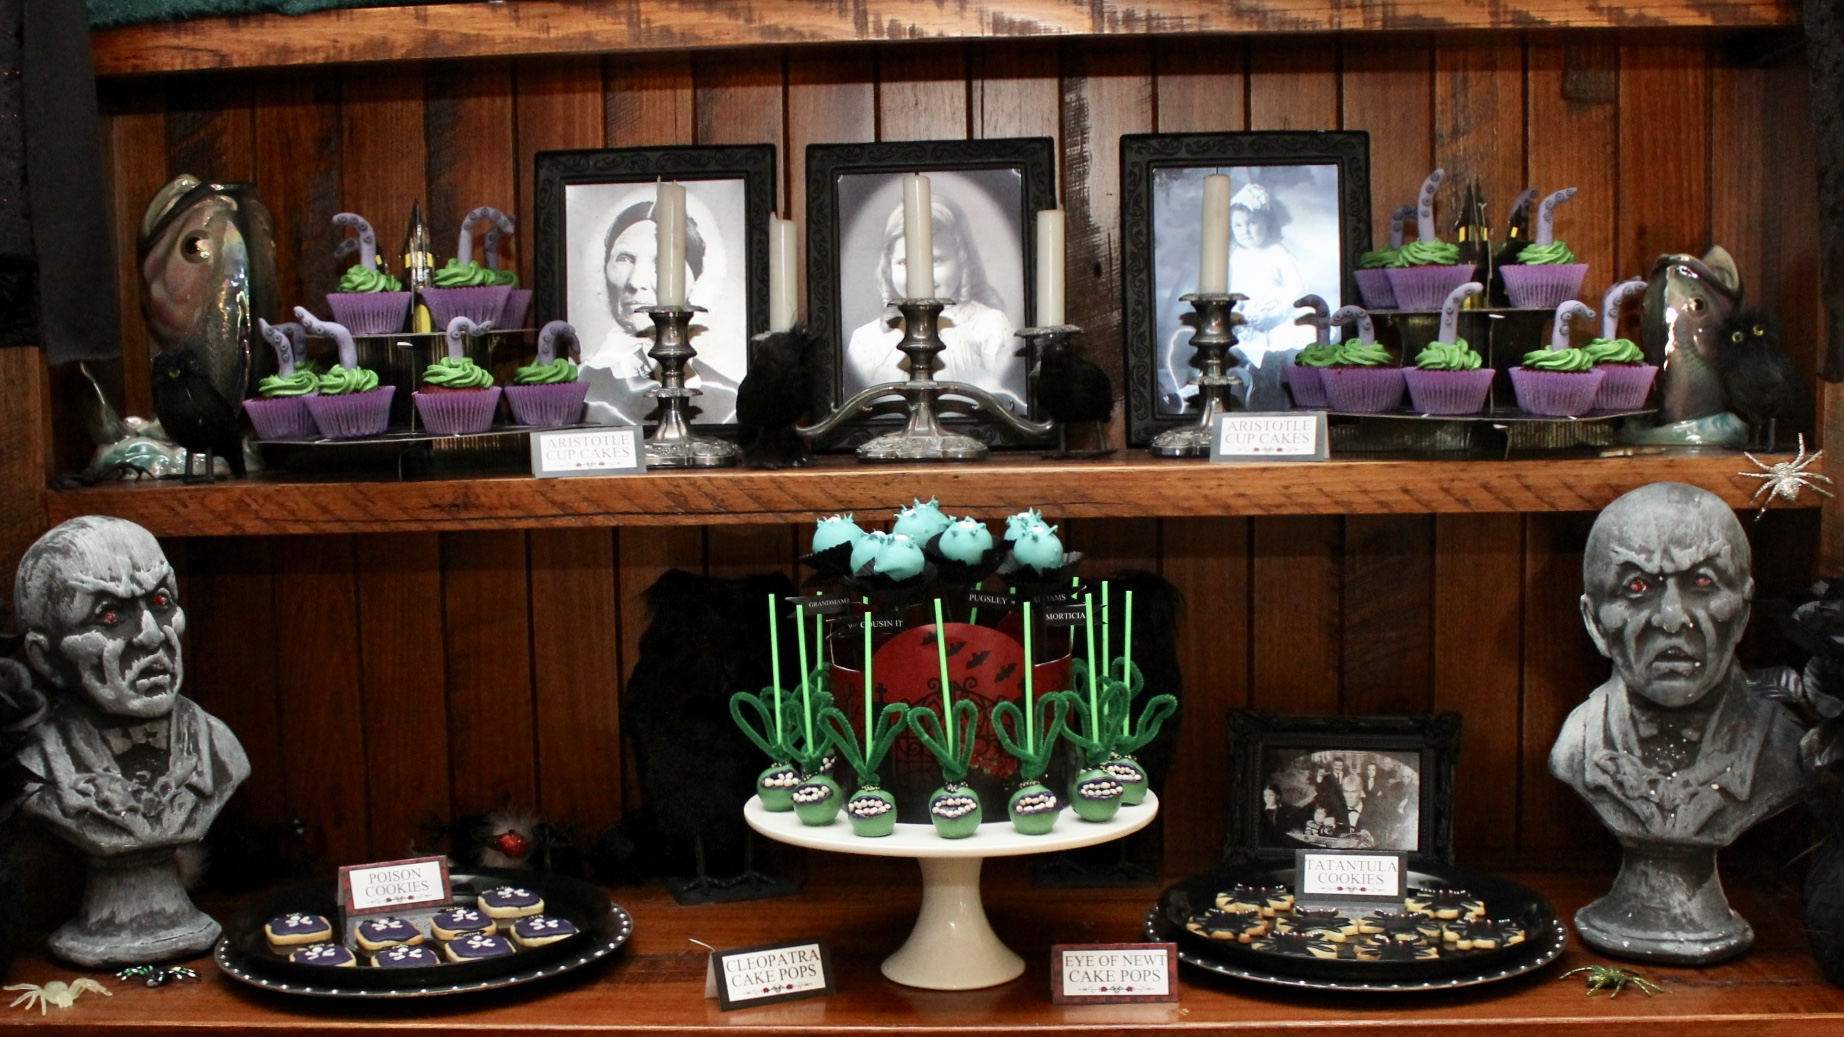 The Addams Family Dessert Table